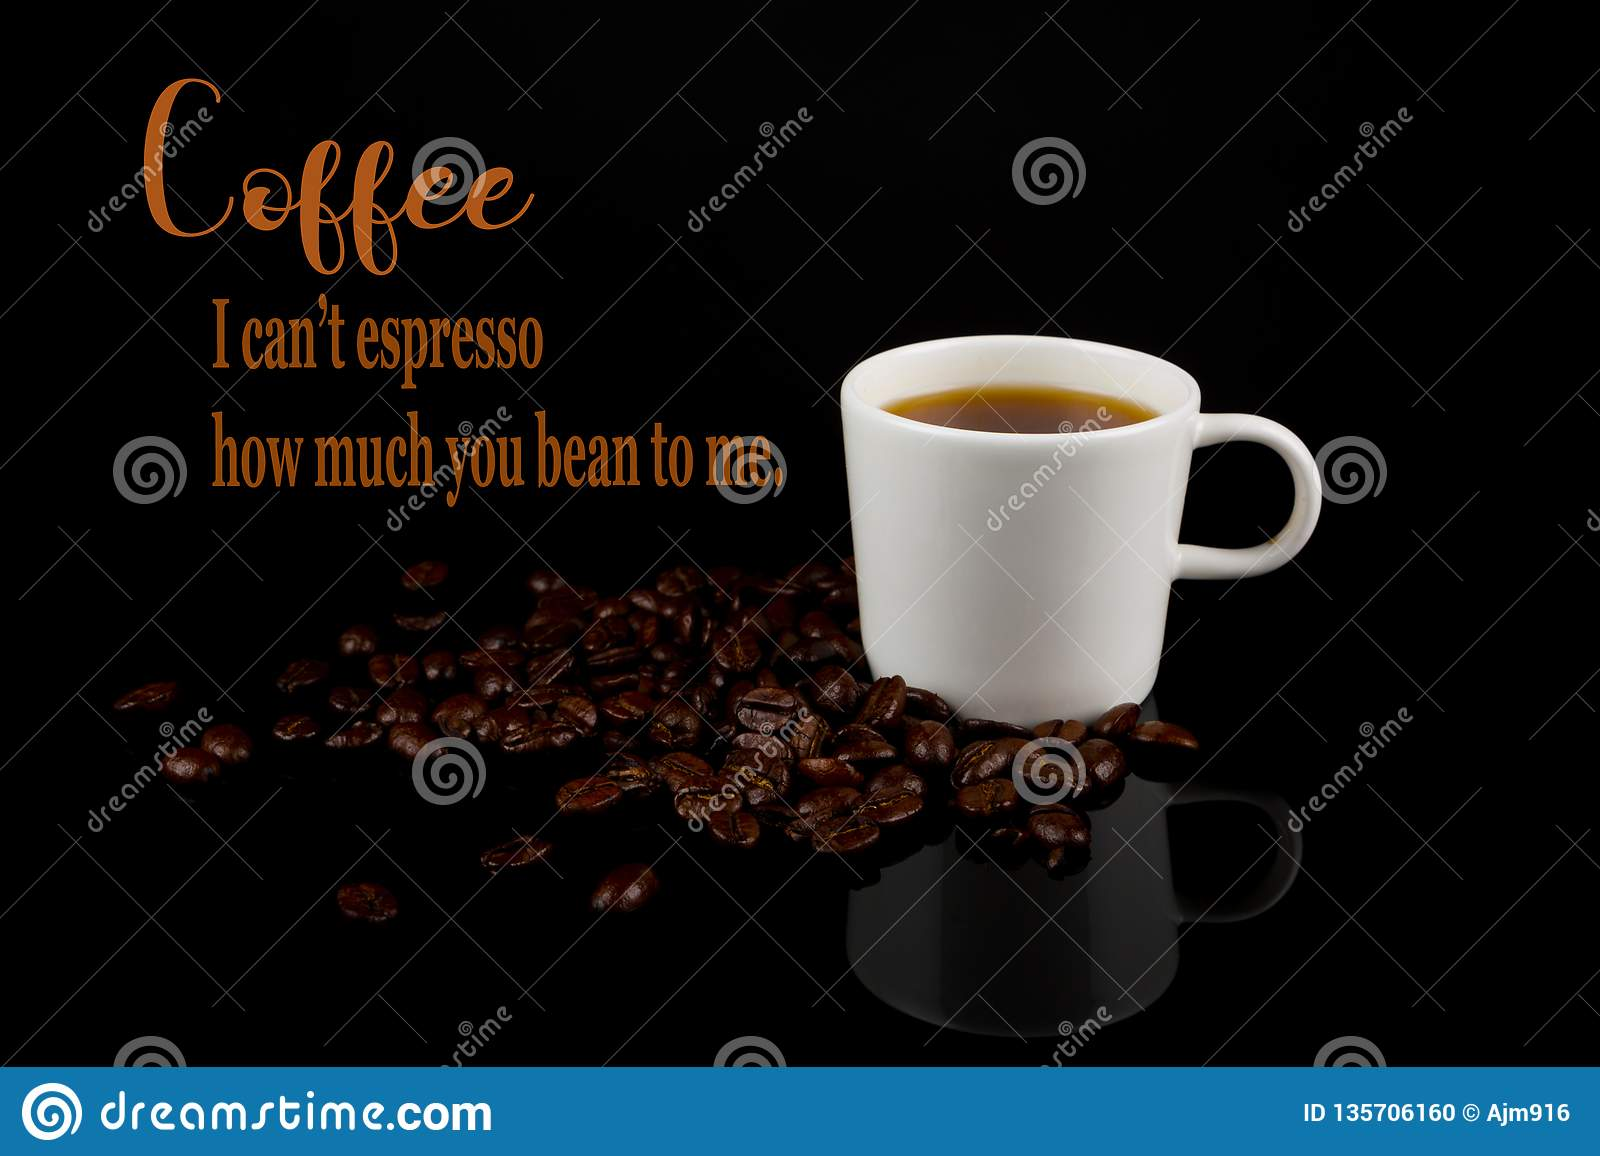 Funny Coffee Memes,`i Can`t Espresso How Much You Mean To Me ... #coffeeBean